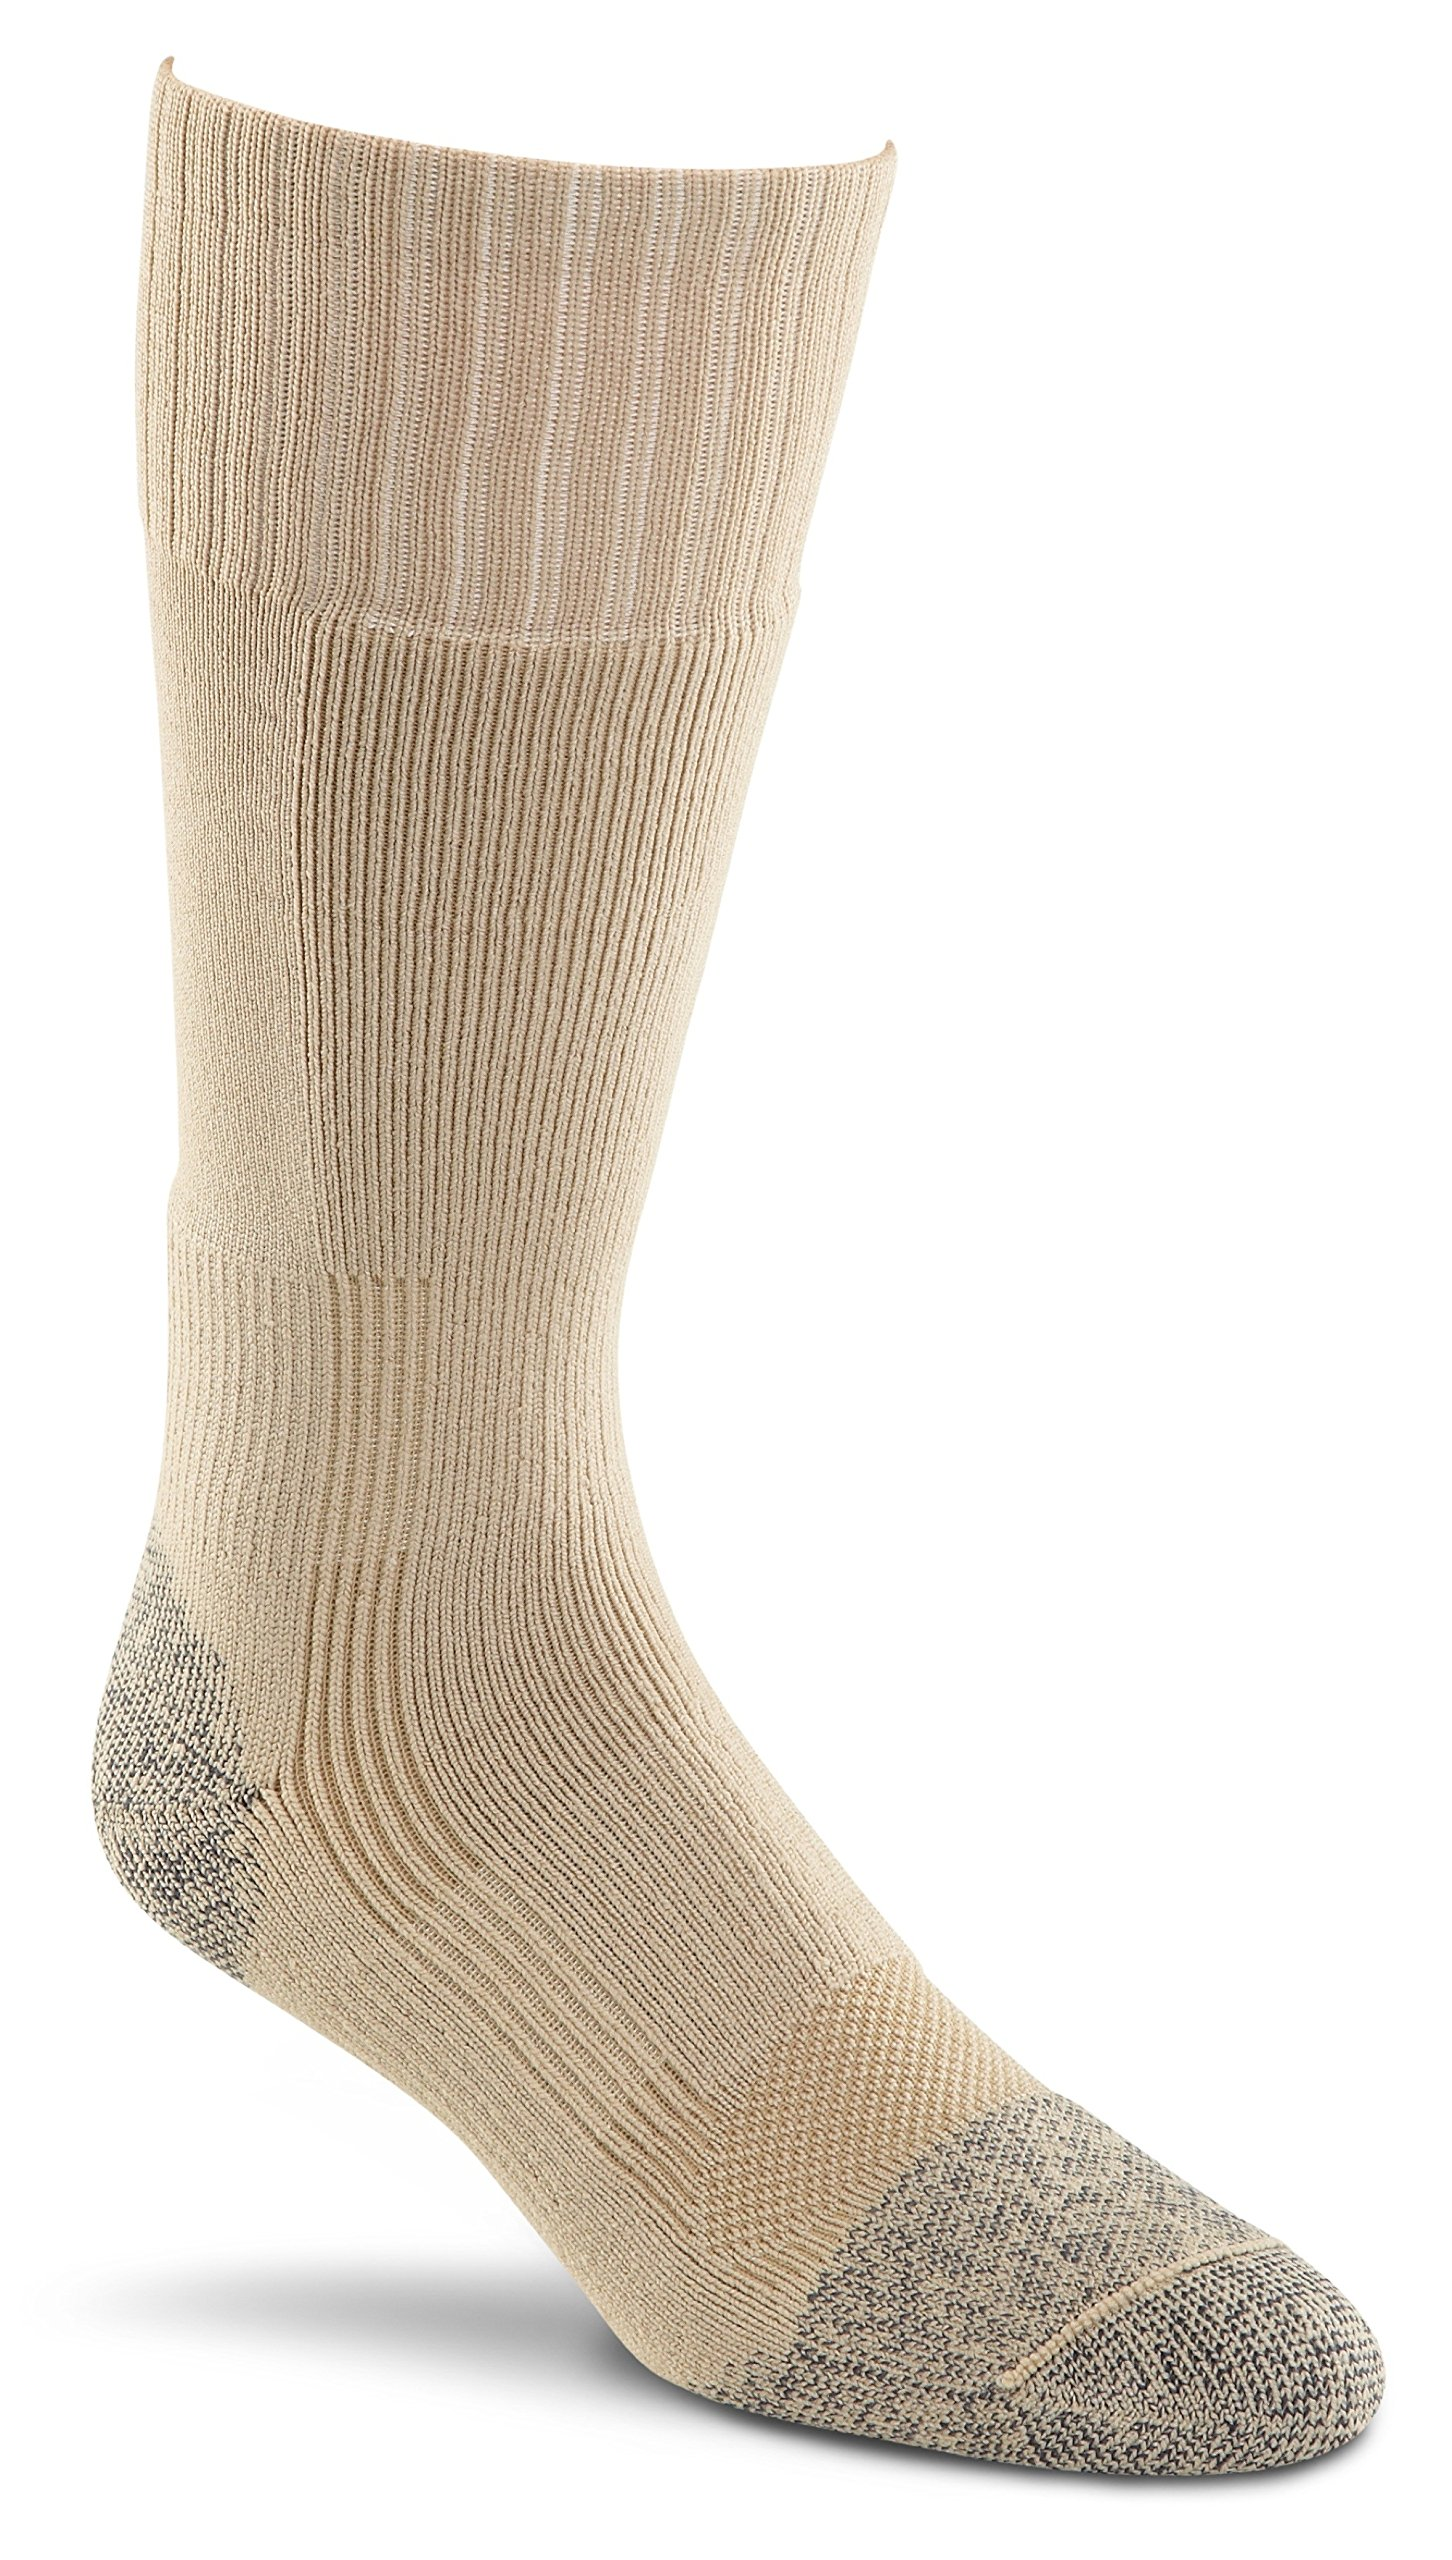 Fox River Military Wick Dry Maximum Mid Calf Boot Sock (Med/Beige) by FoxRiver